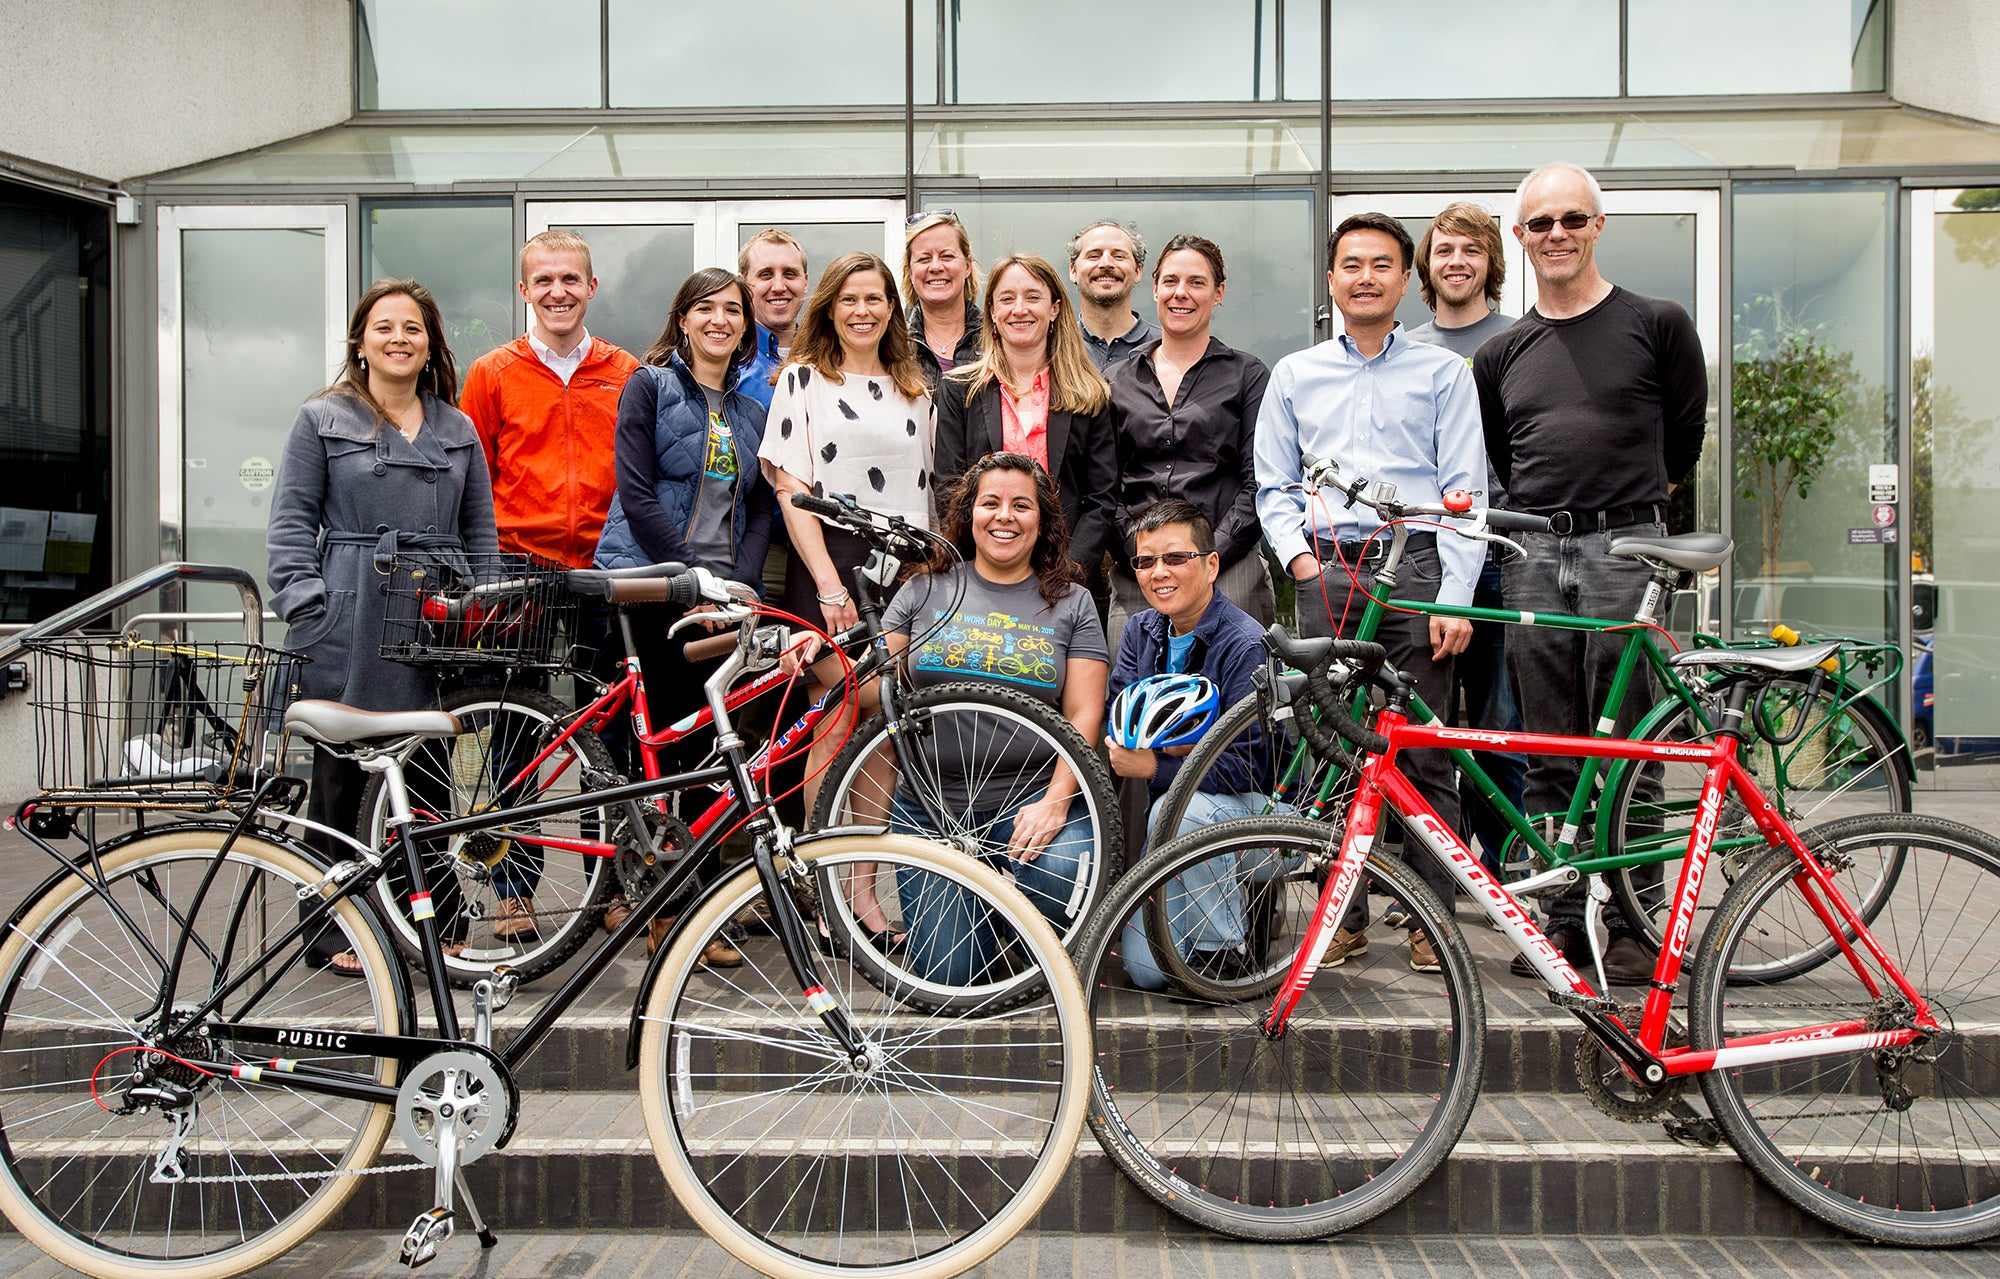 MTC staff who participated in Bike to Work Day